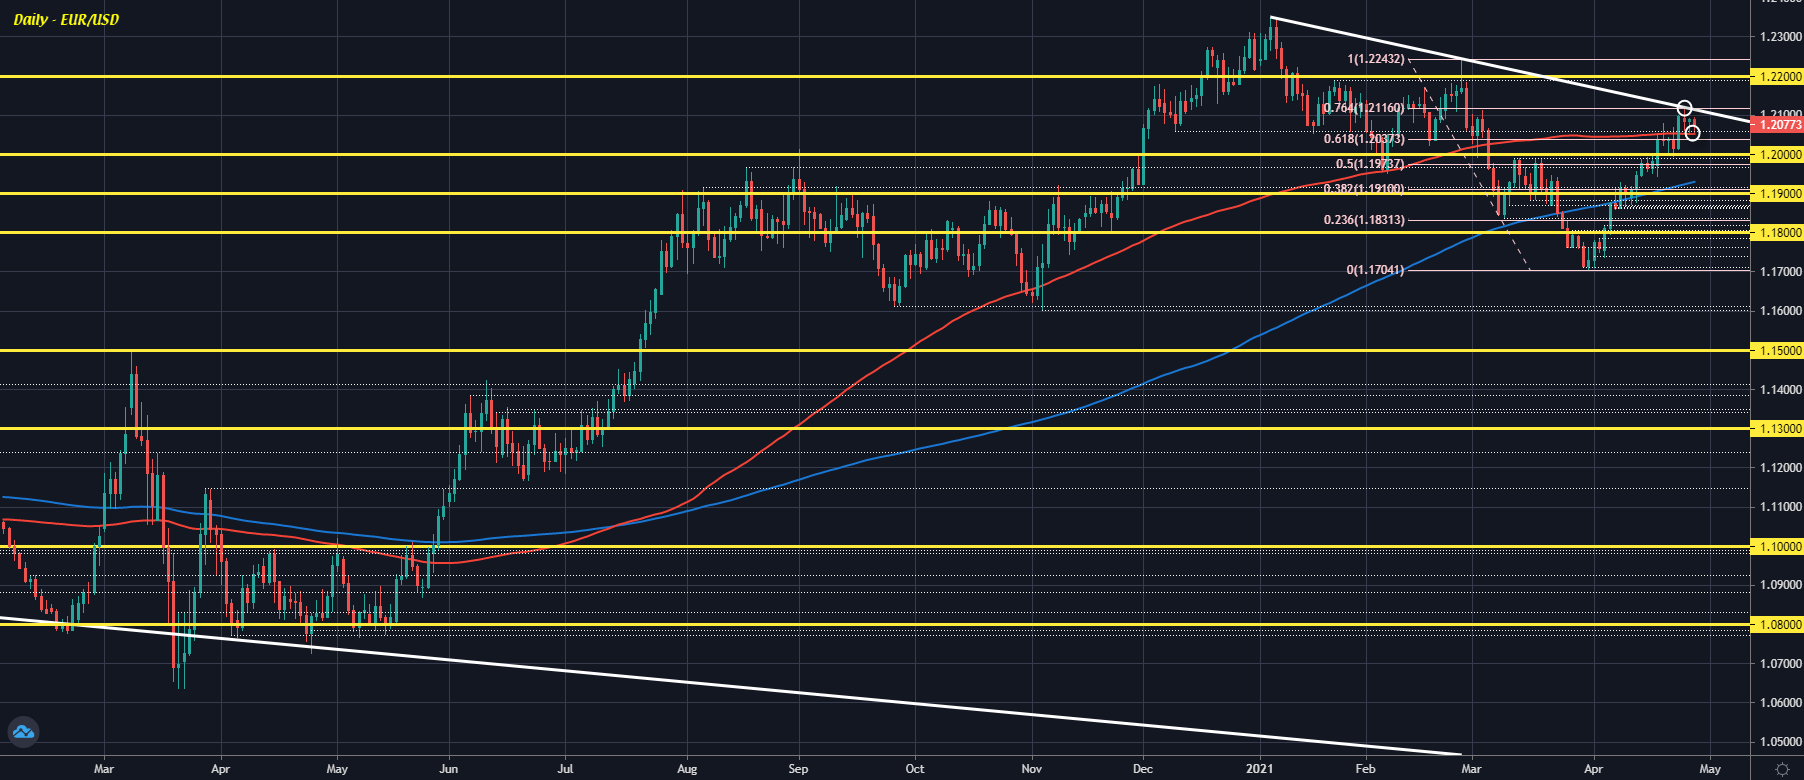 EUR/USD still caught between key technical levels ahead of the Fed later today